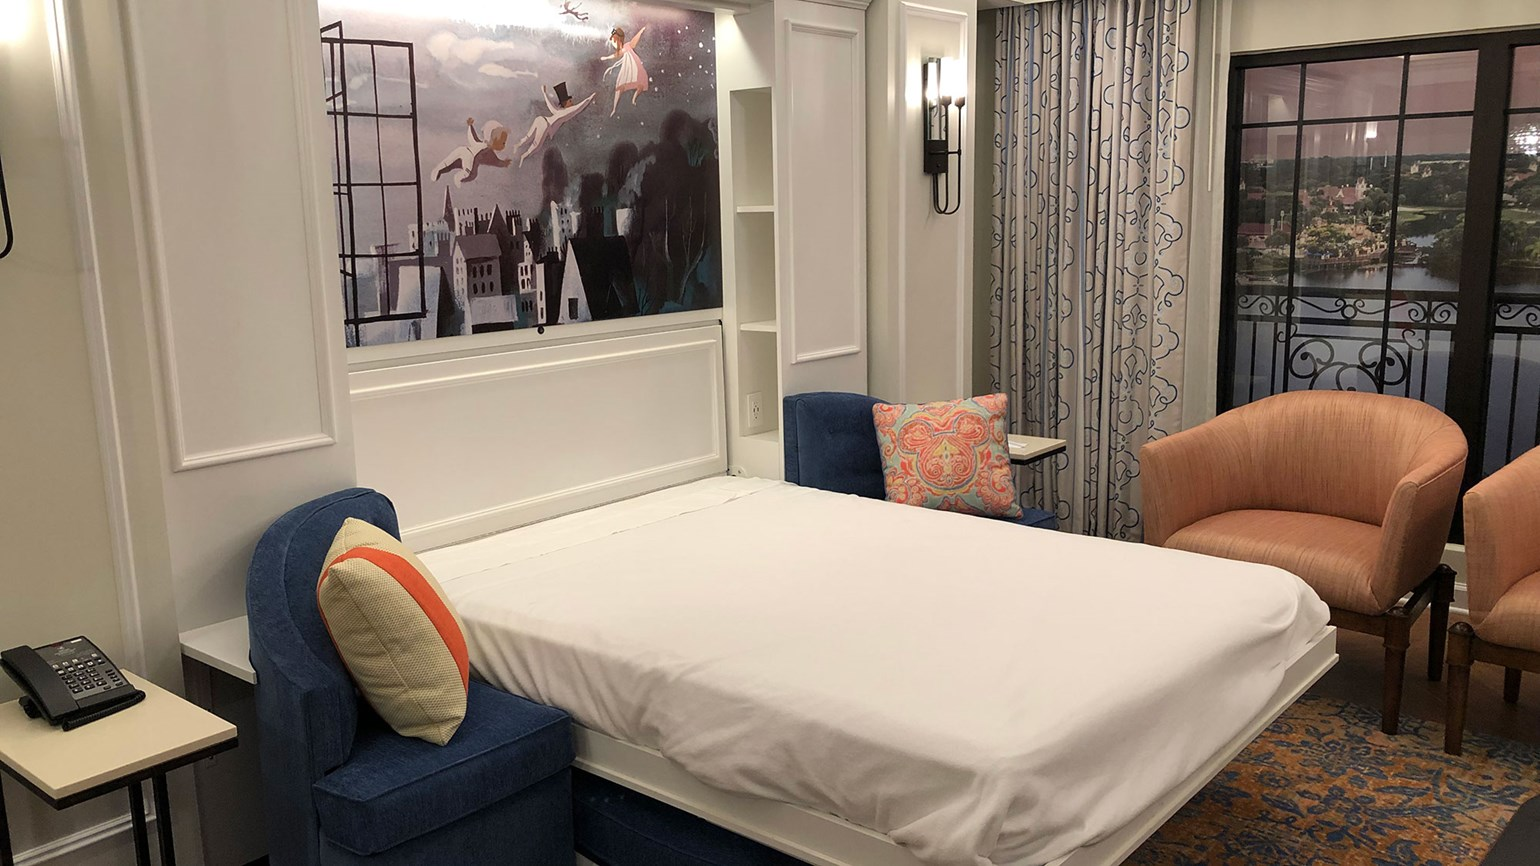 Disney's Riviera Resort to feature foldout beds